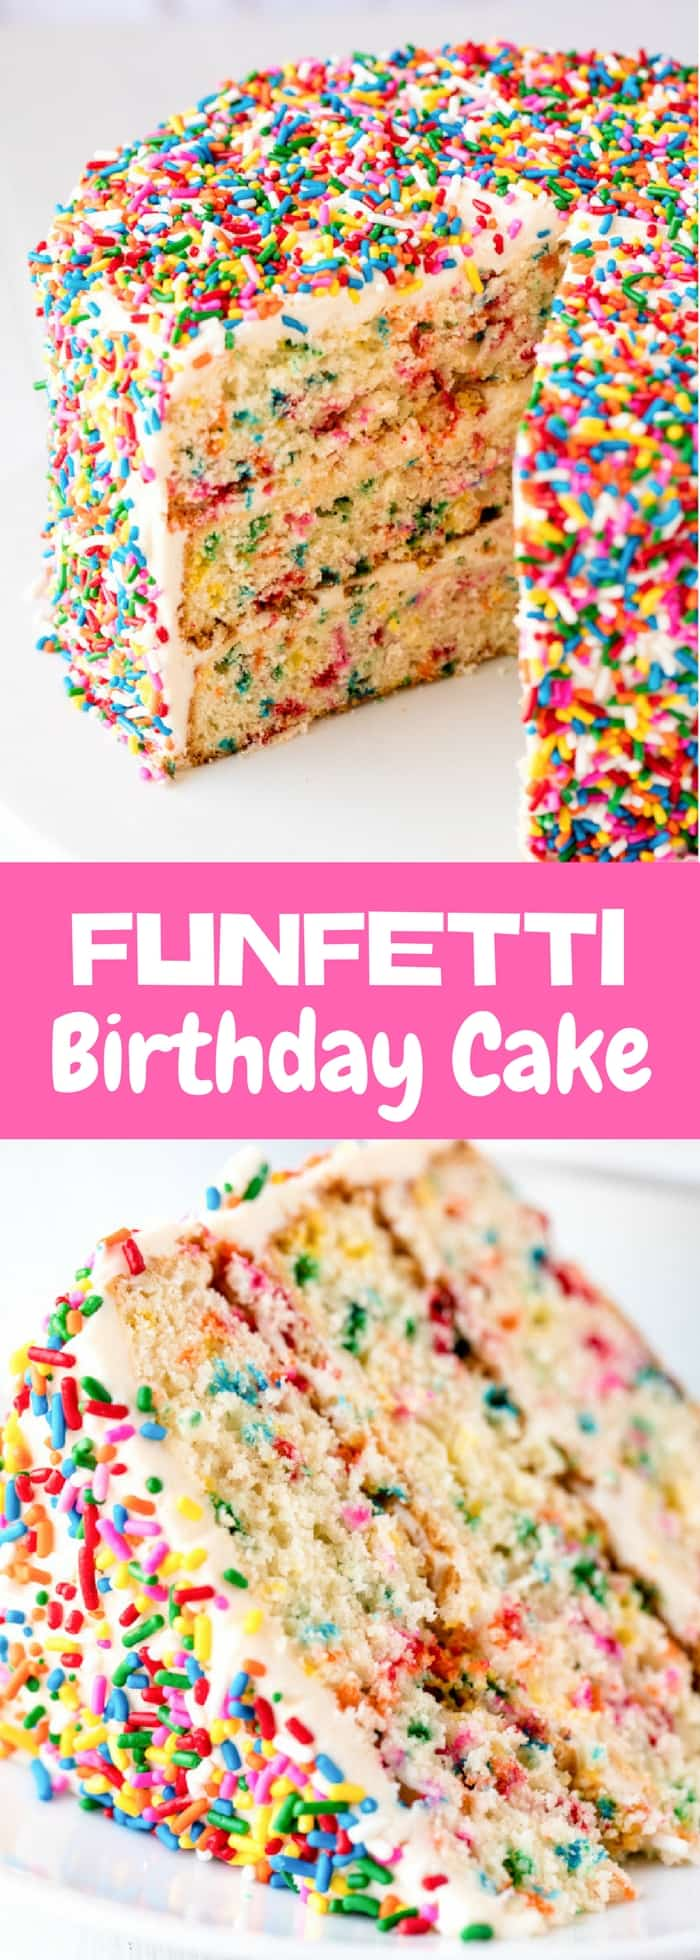 Celebrate in style with this Funfetti Birthday Cake made from scratch. It's moist, and sturdy, and covered in sprinkle goodness for a beautiful cake perfect for any celebration or birthday.